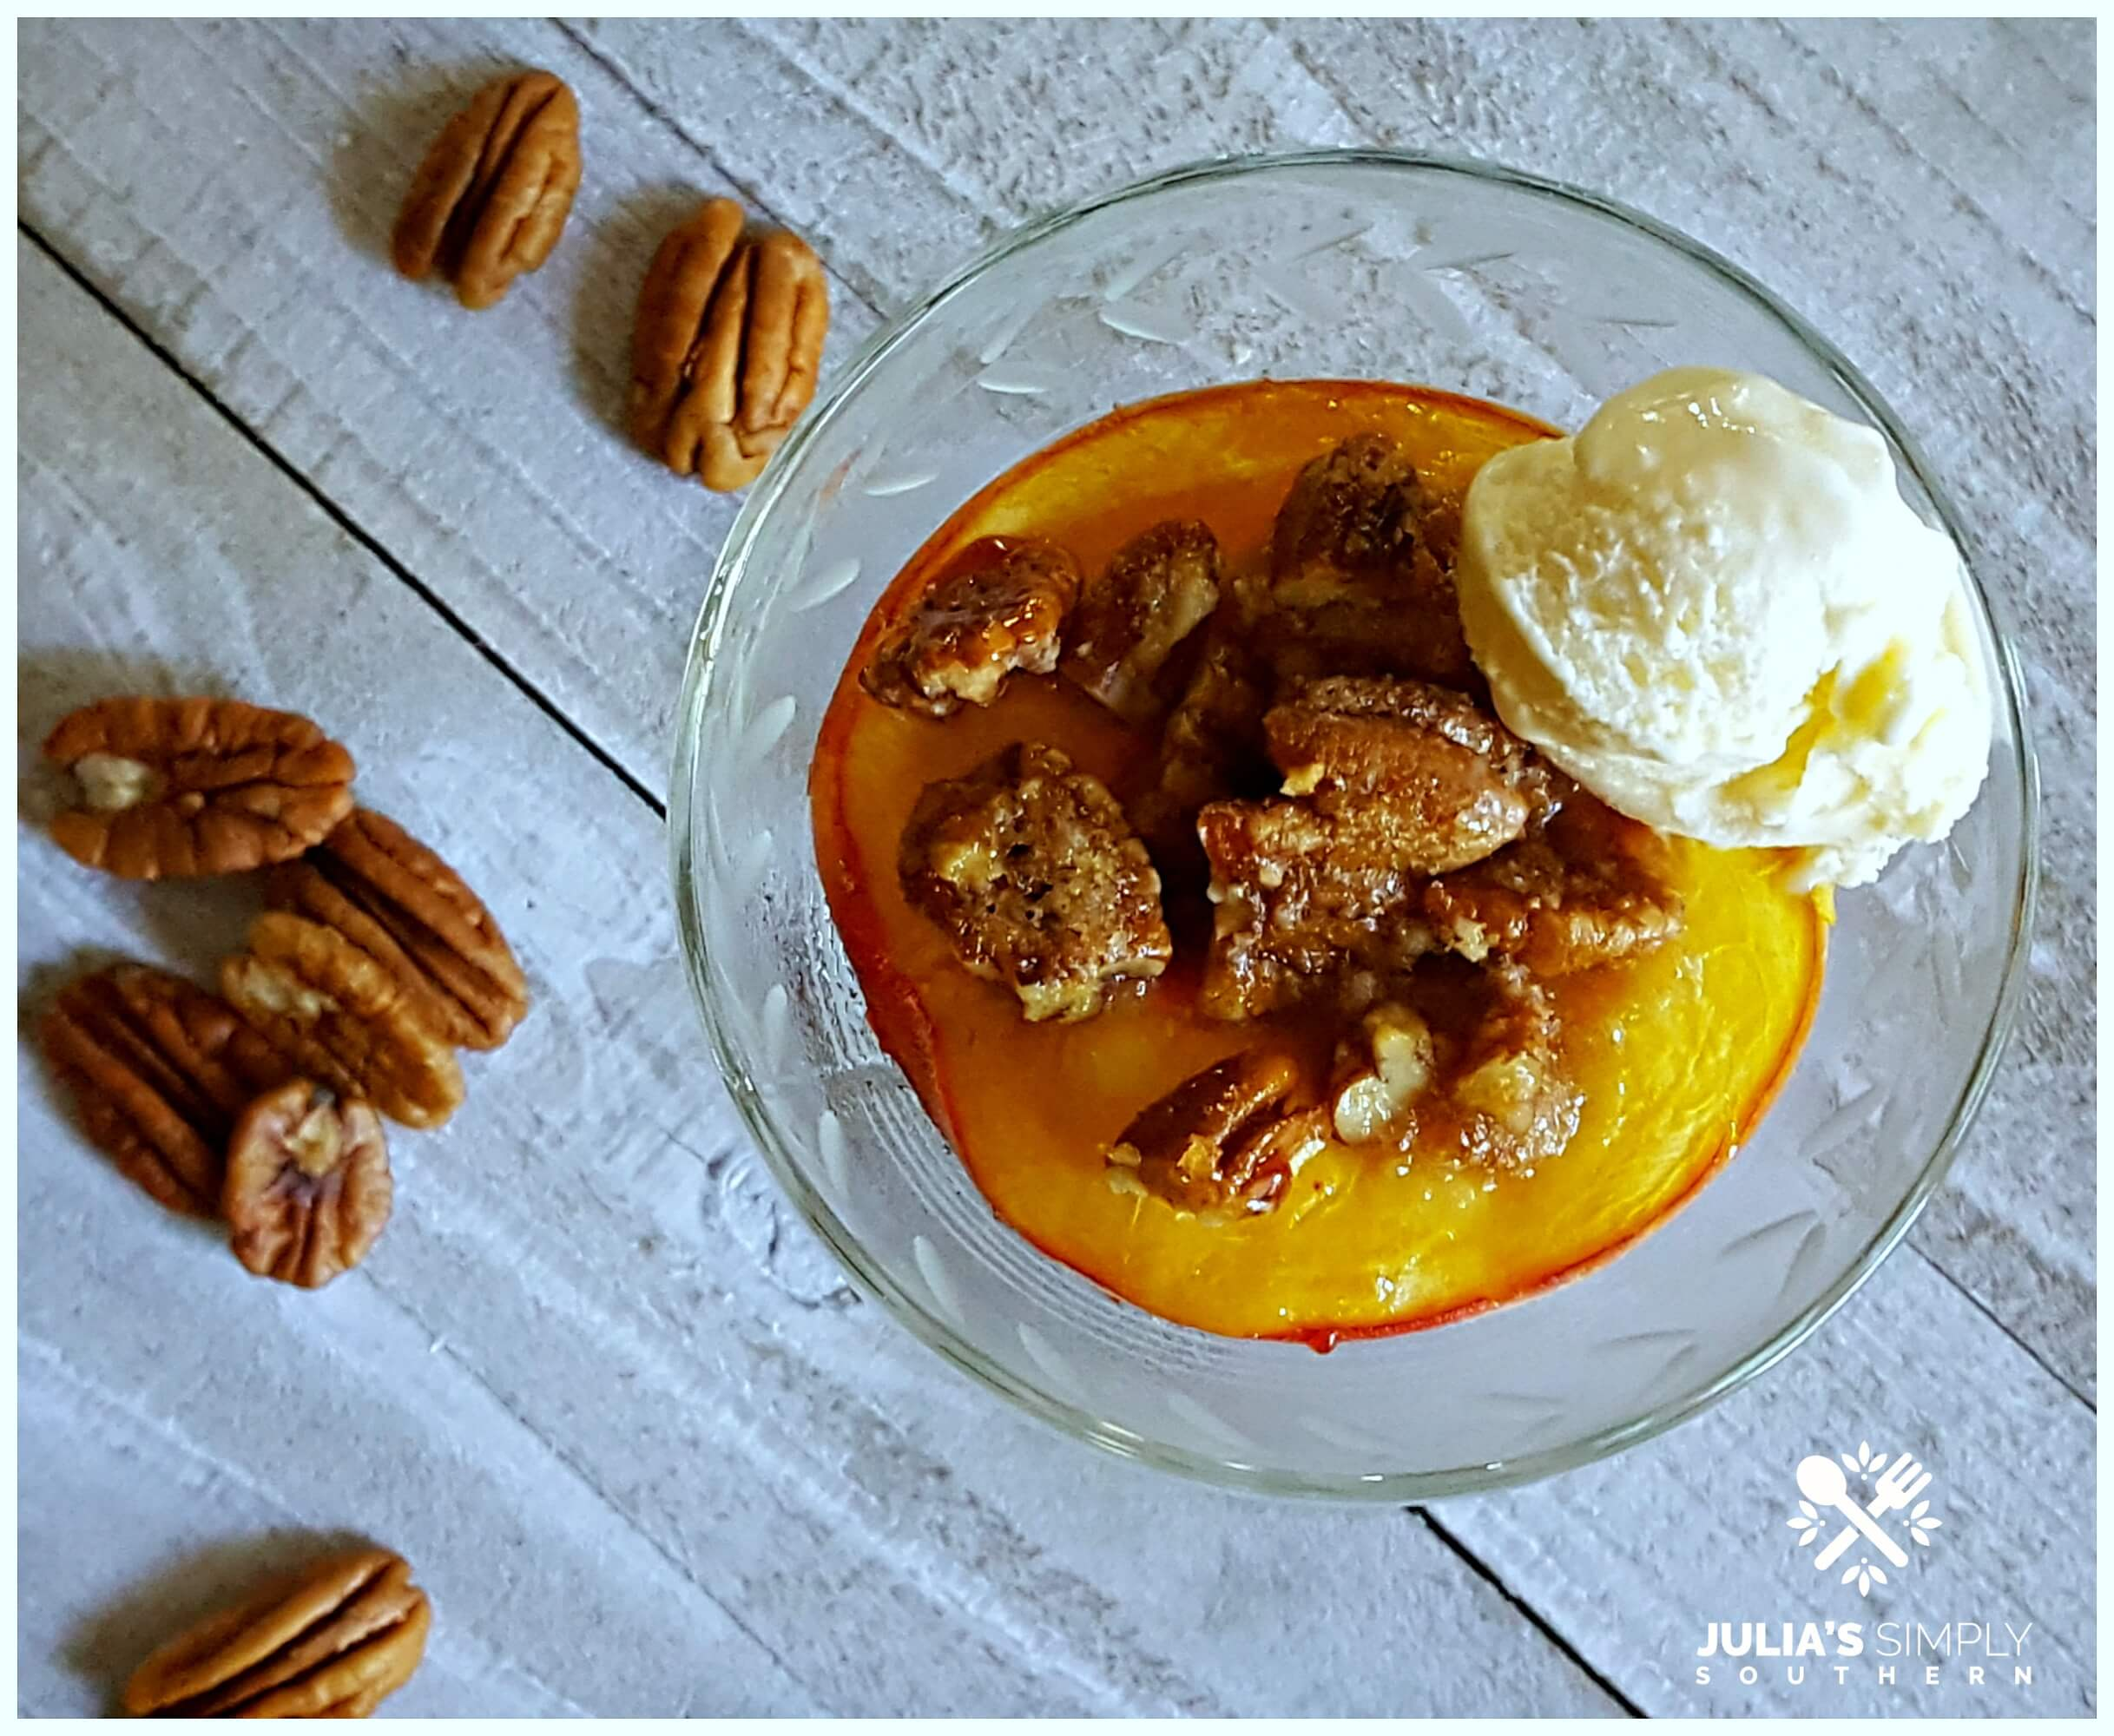 Fresh Peaches Dessert - Bourbon baked peaches - Julia's Simply Southern